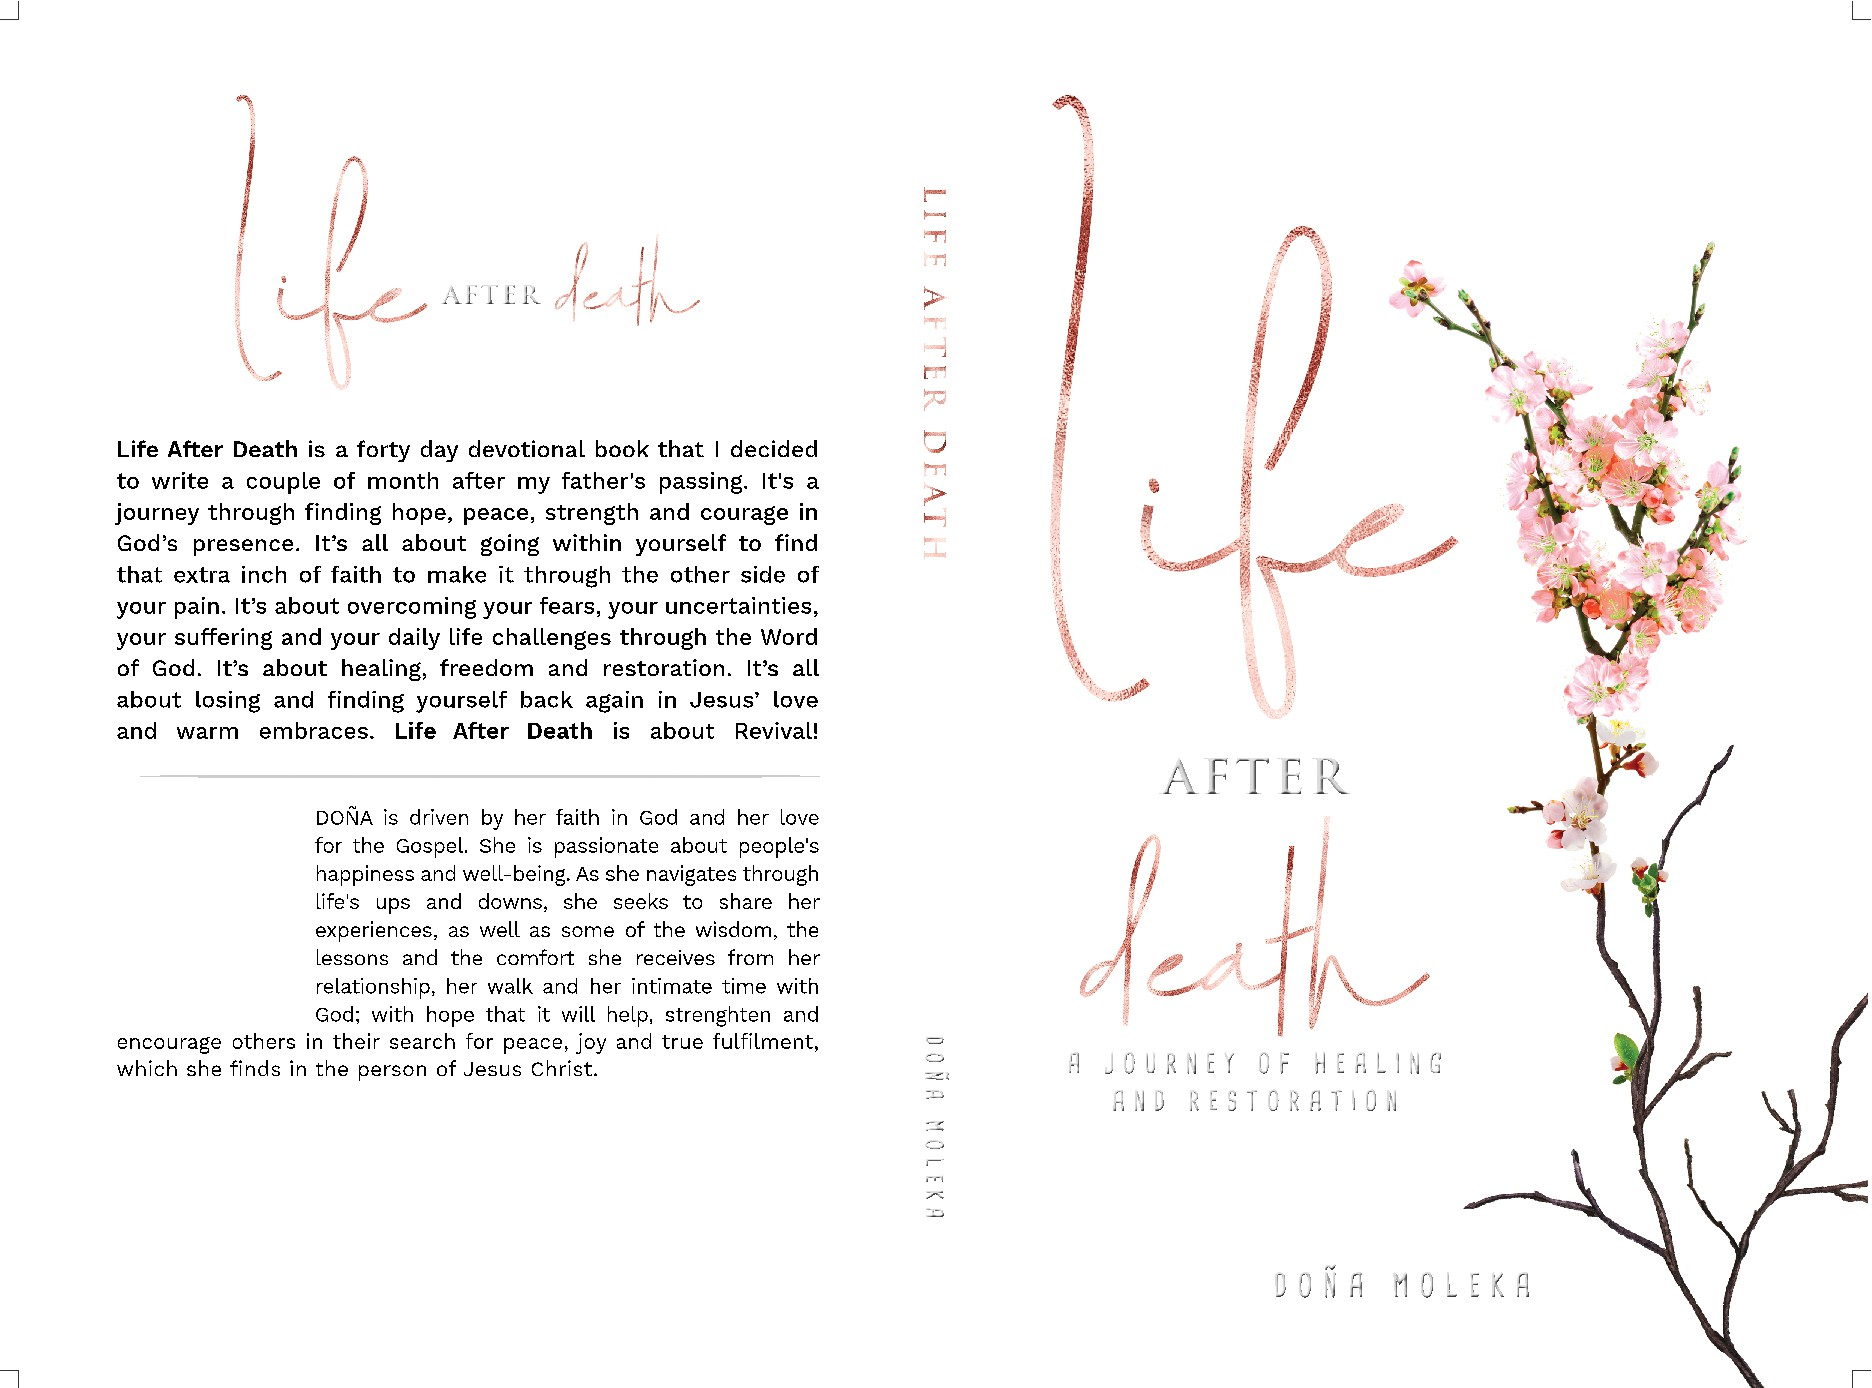 Create a Book cover for a devotional book that seeks to bring hope and peace